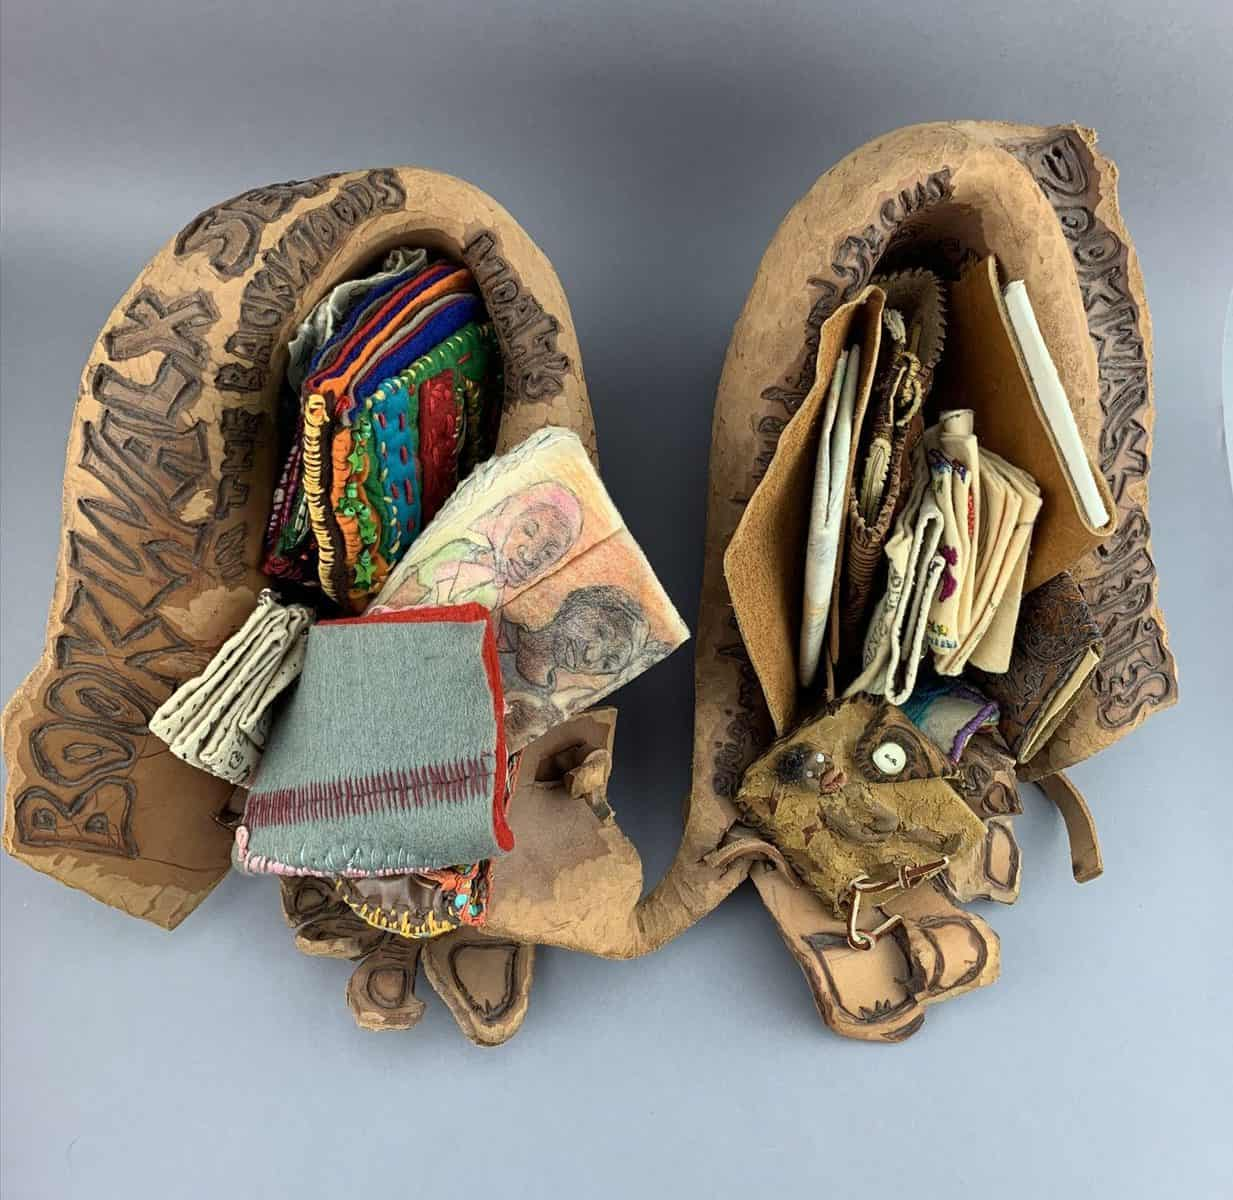 There are two photos on this page. The first is of a set of leather shoe-type objects which cradle several small, varied artist books made of paper and fabric. The second is a view from behind the leather shoes. Leather lacing holds the shoes together.